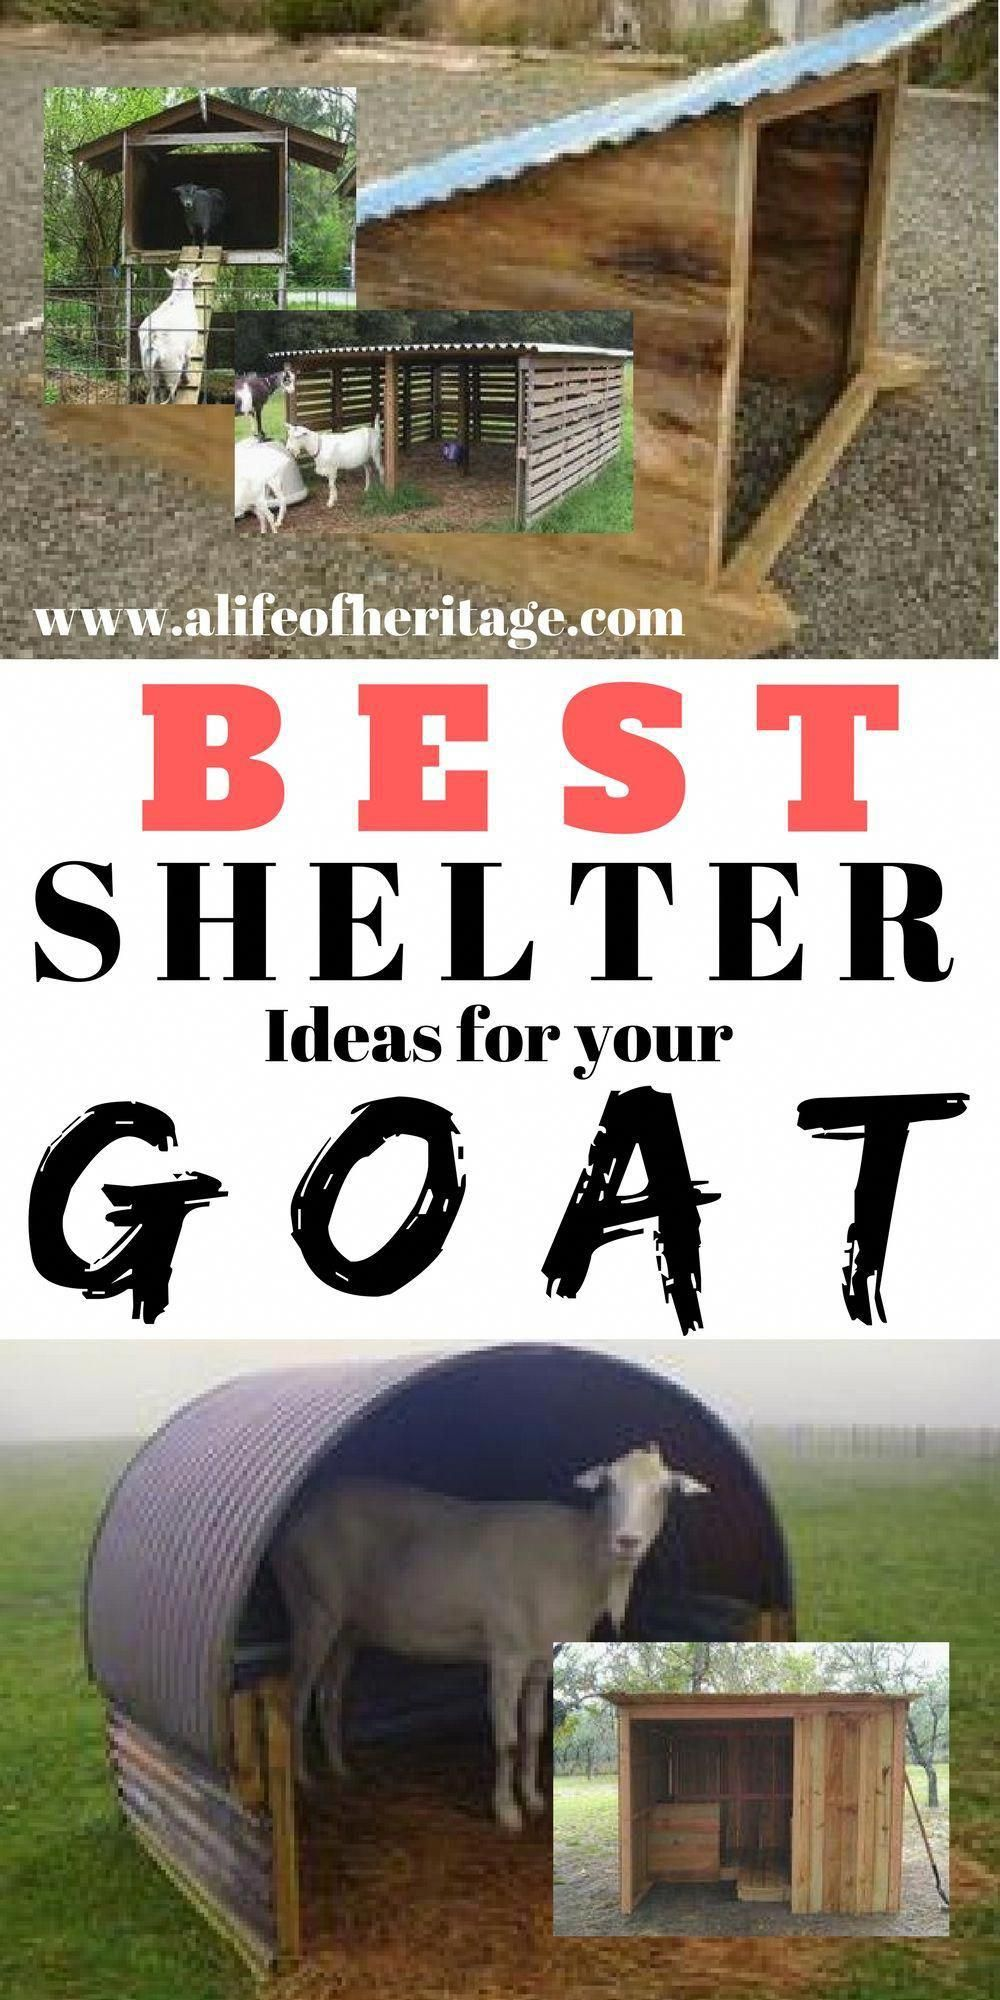 How To Raise Goats: Natural Goat Care for Meat, Milk and ...